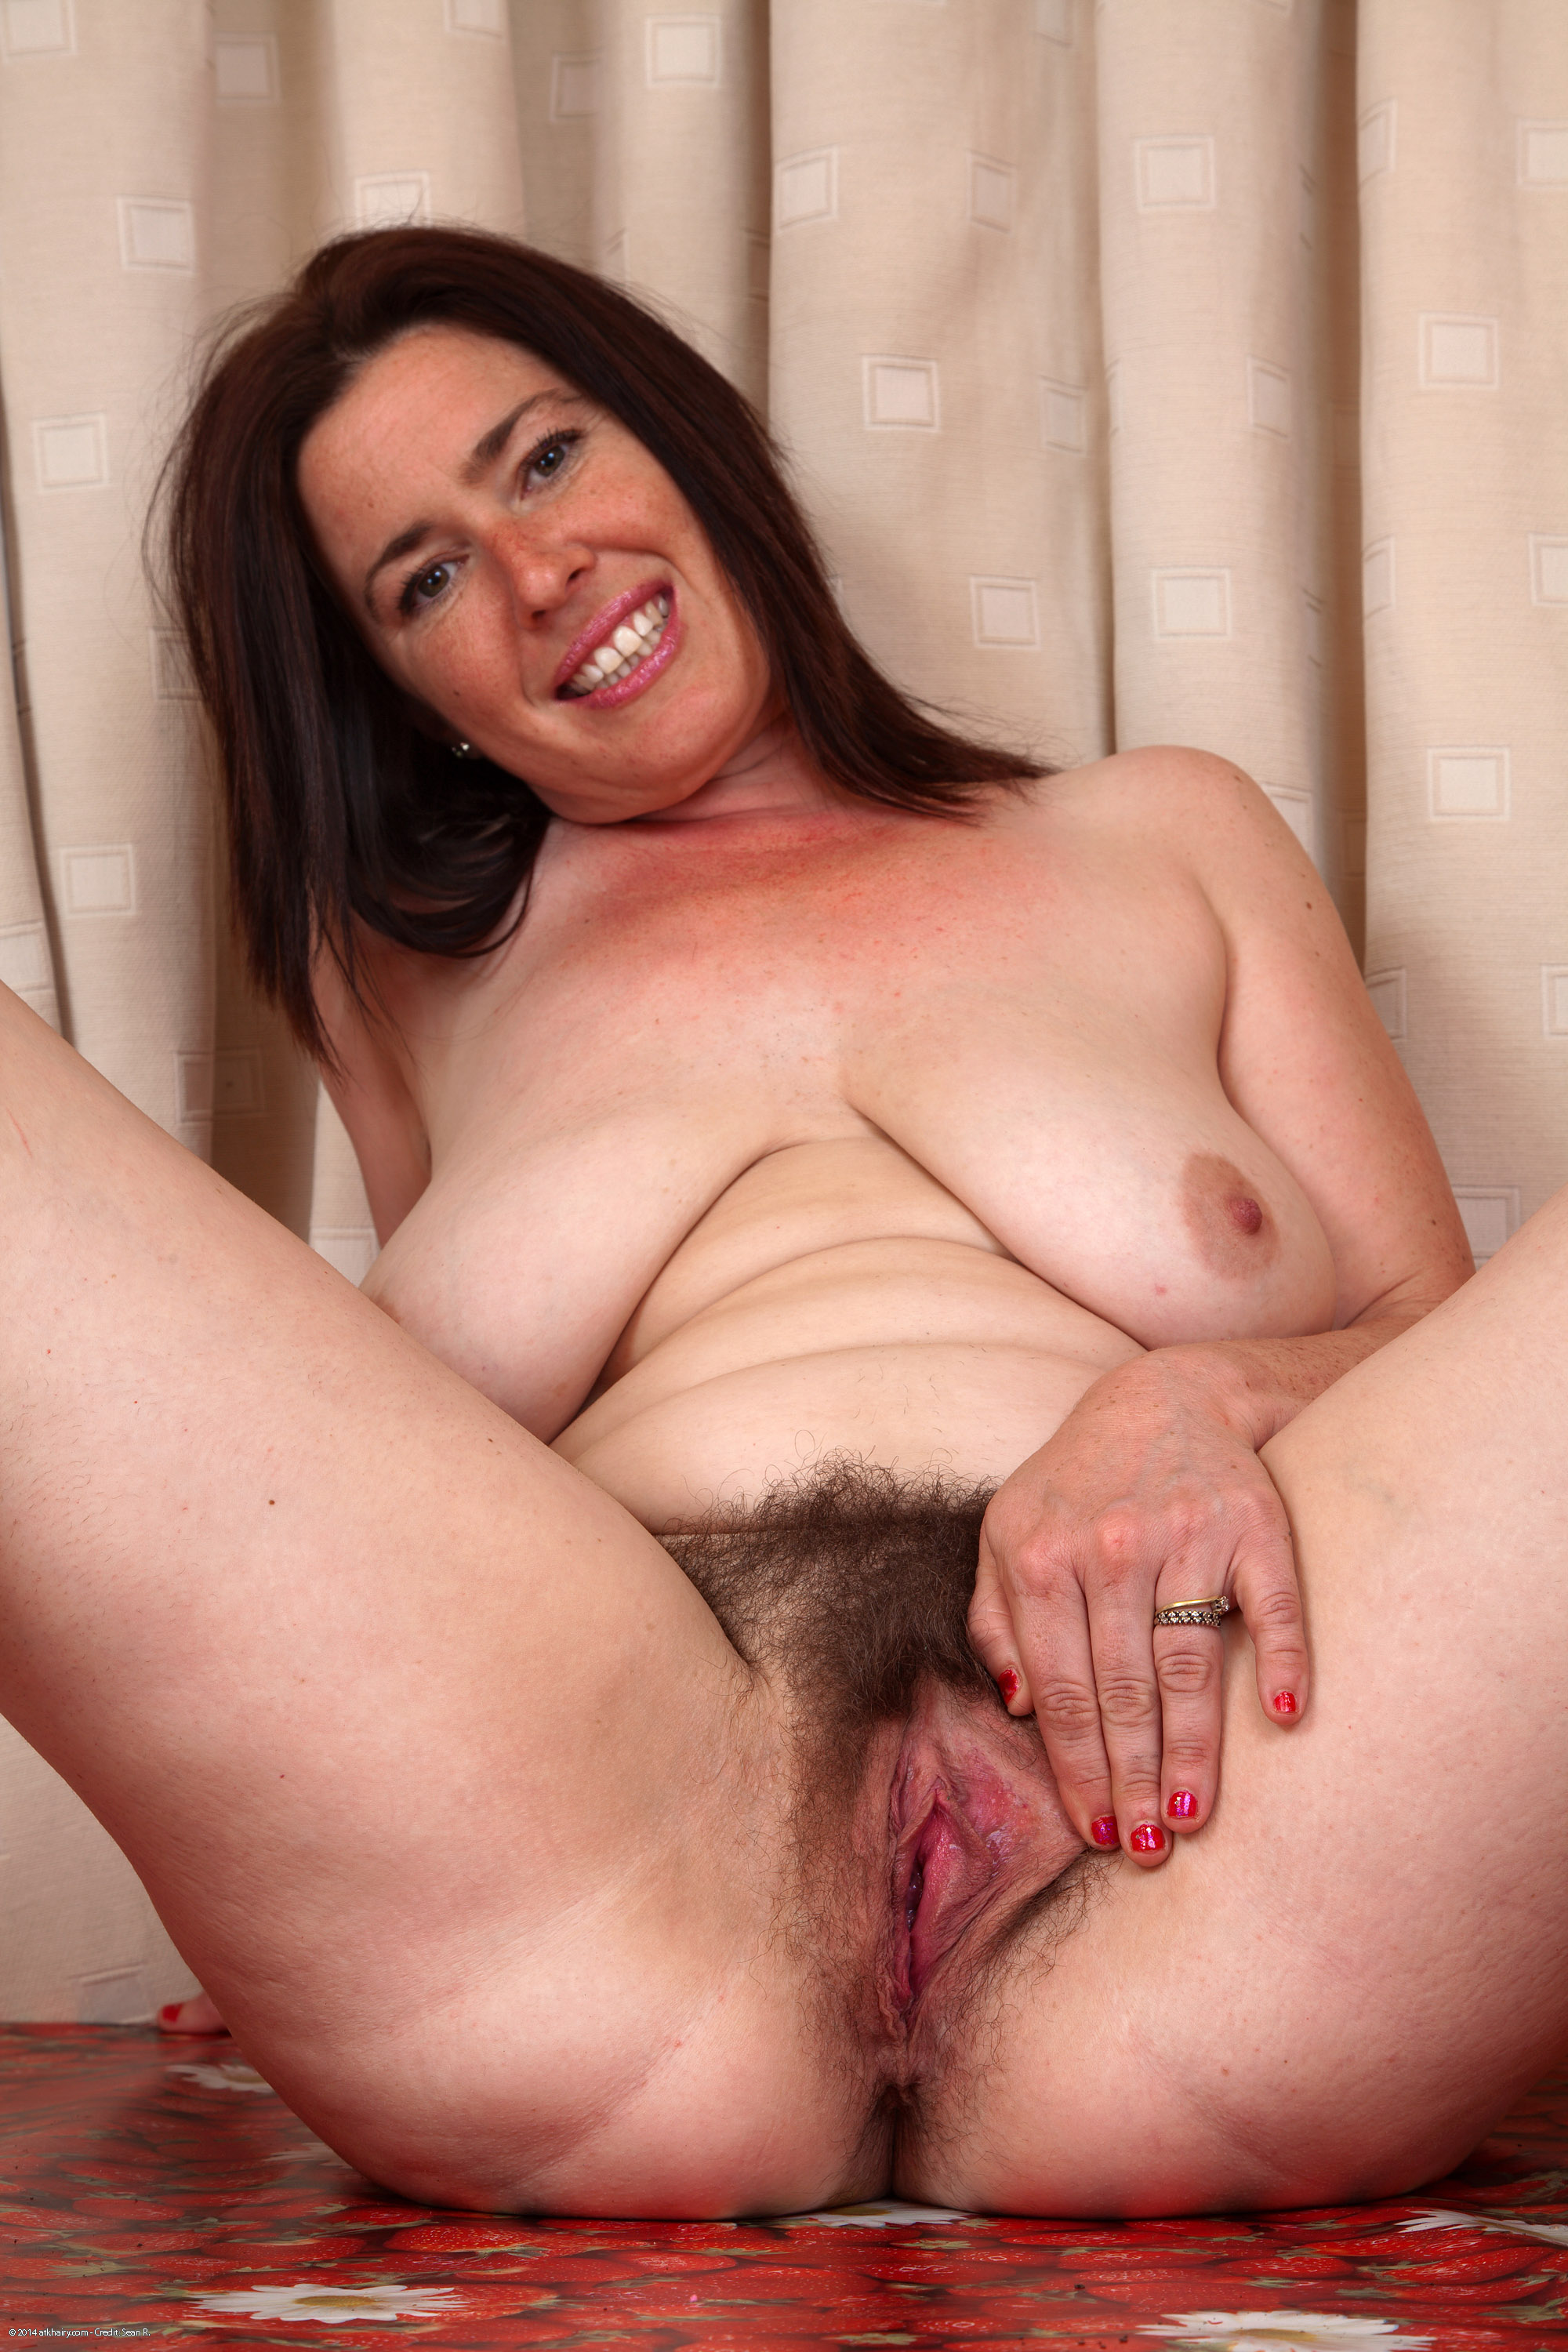 Click here hairy girl xxx can recommend